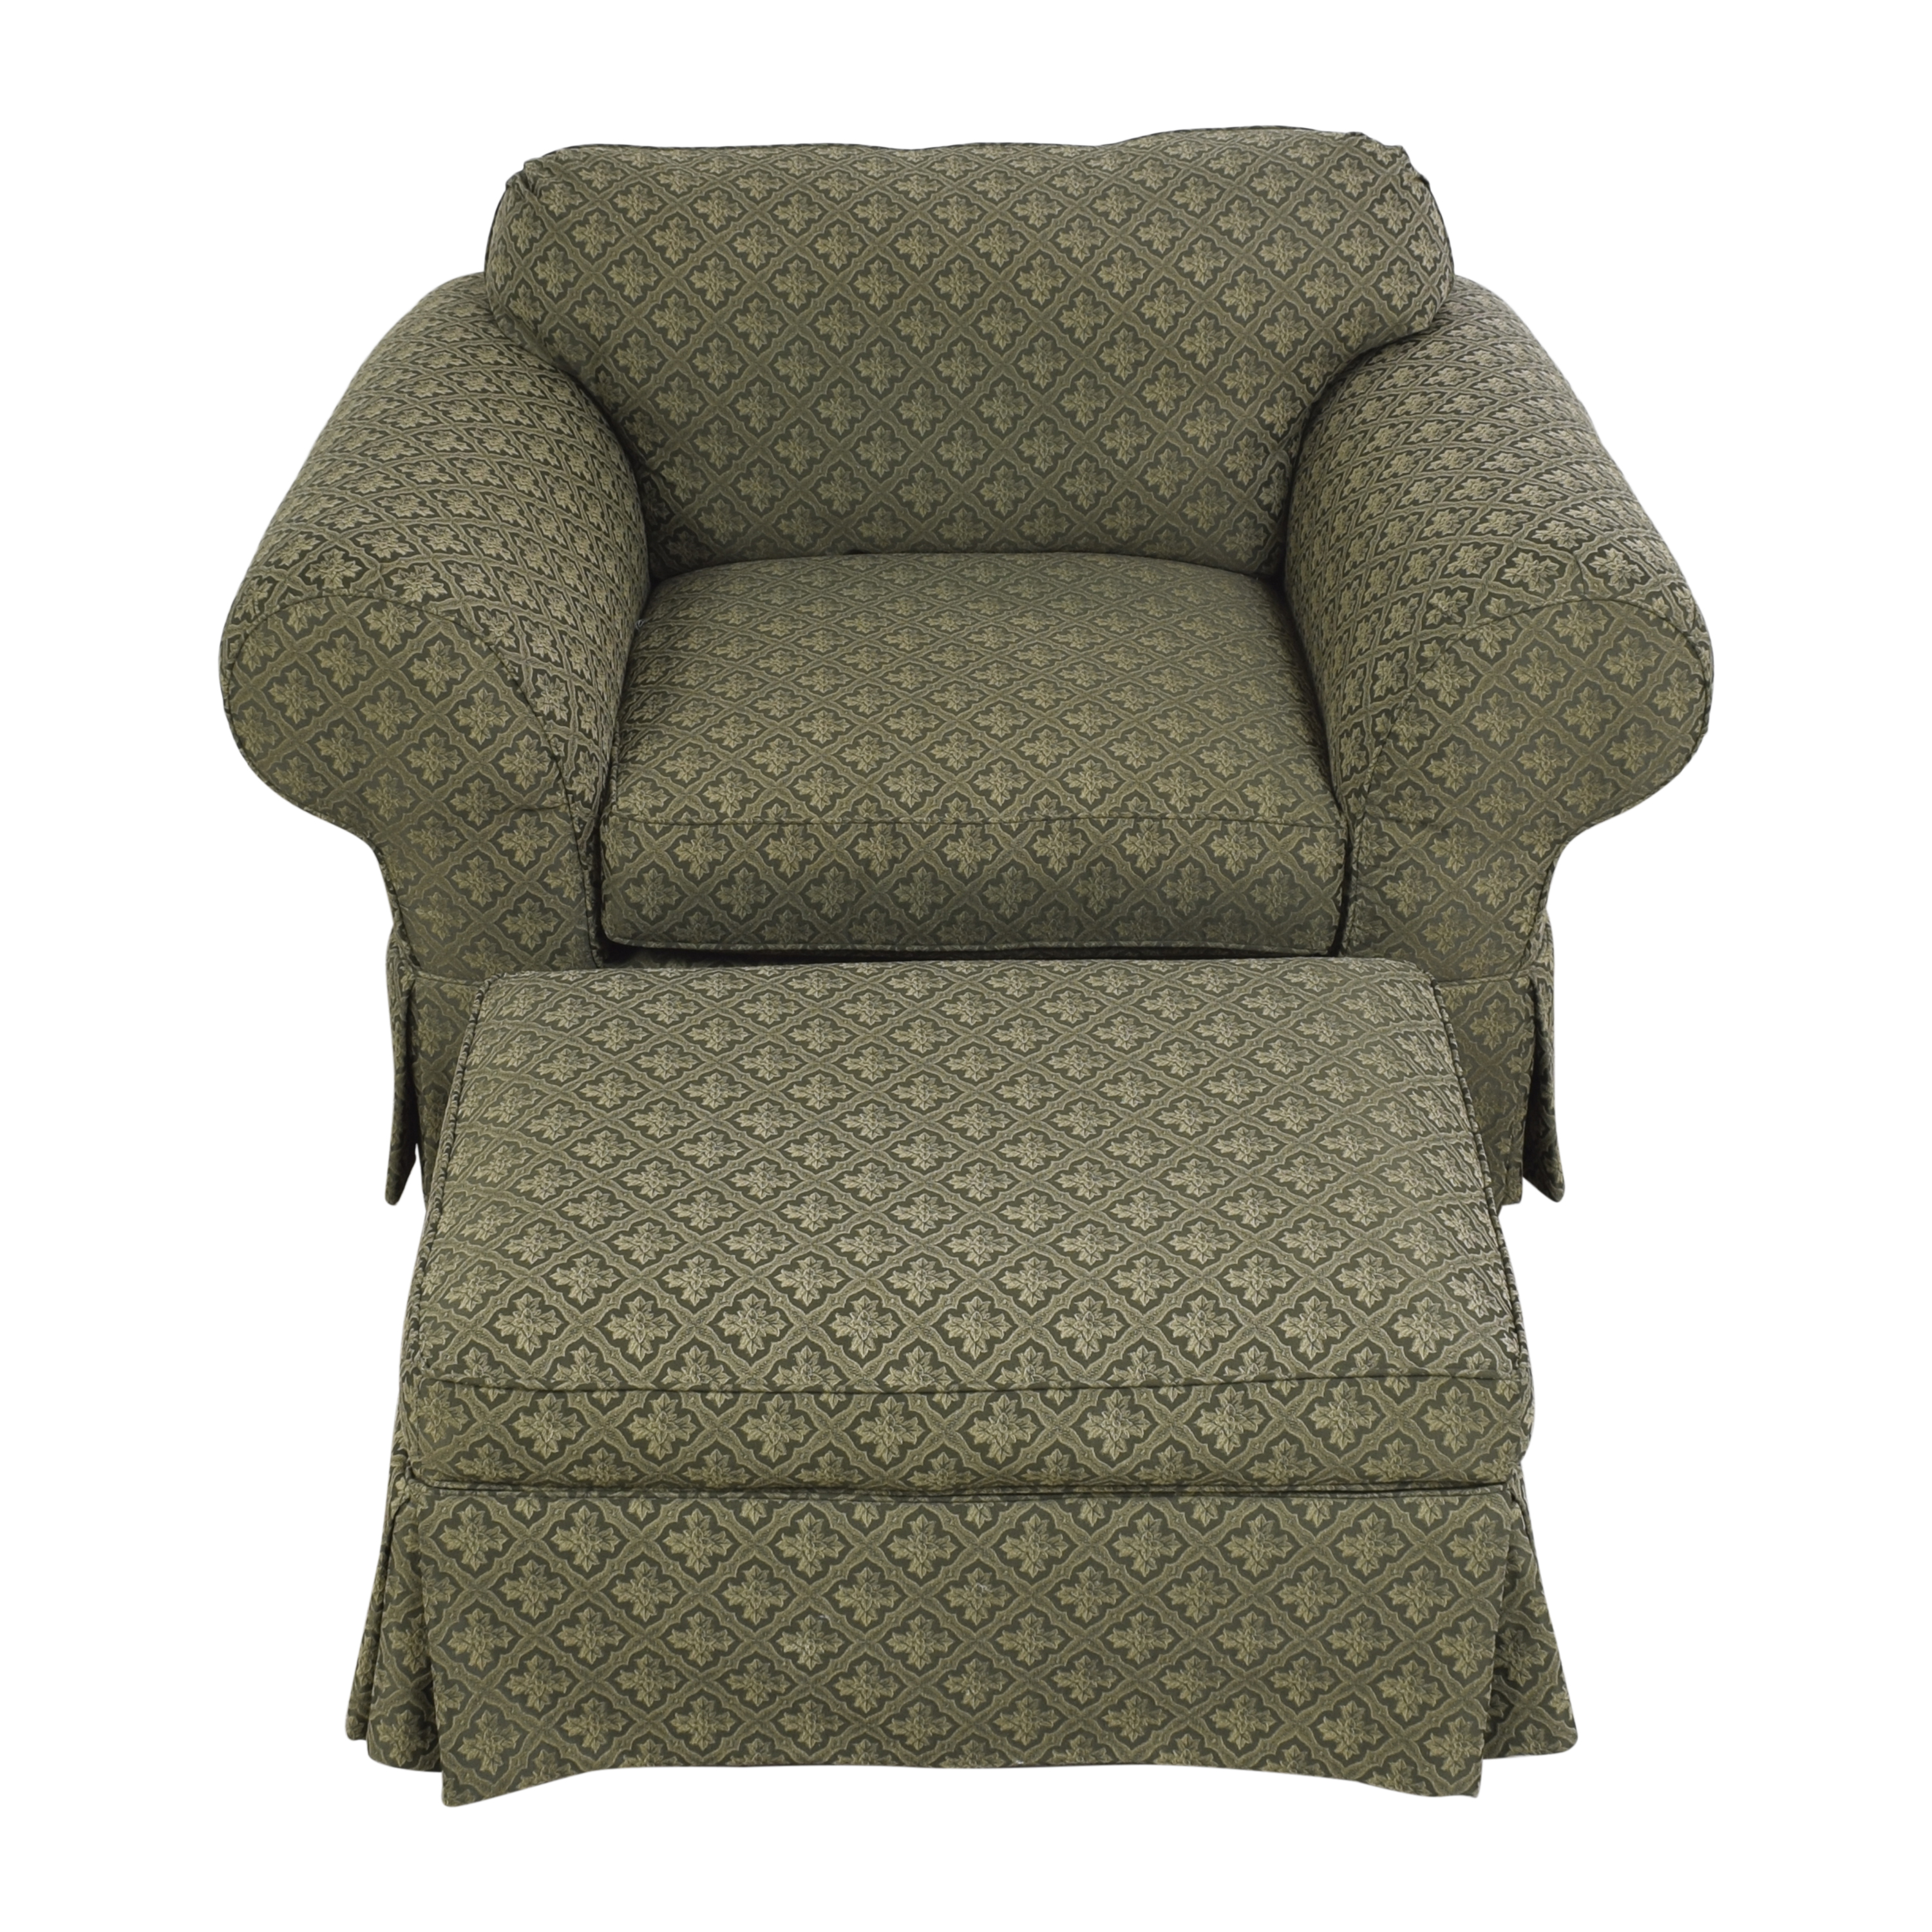 Broyhill Furniture Broyhill Lounge Chair with Ottoman nyc